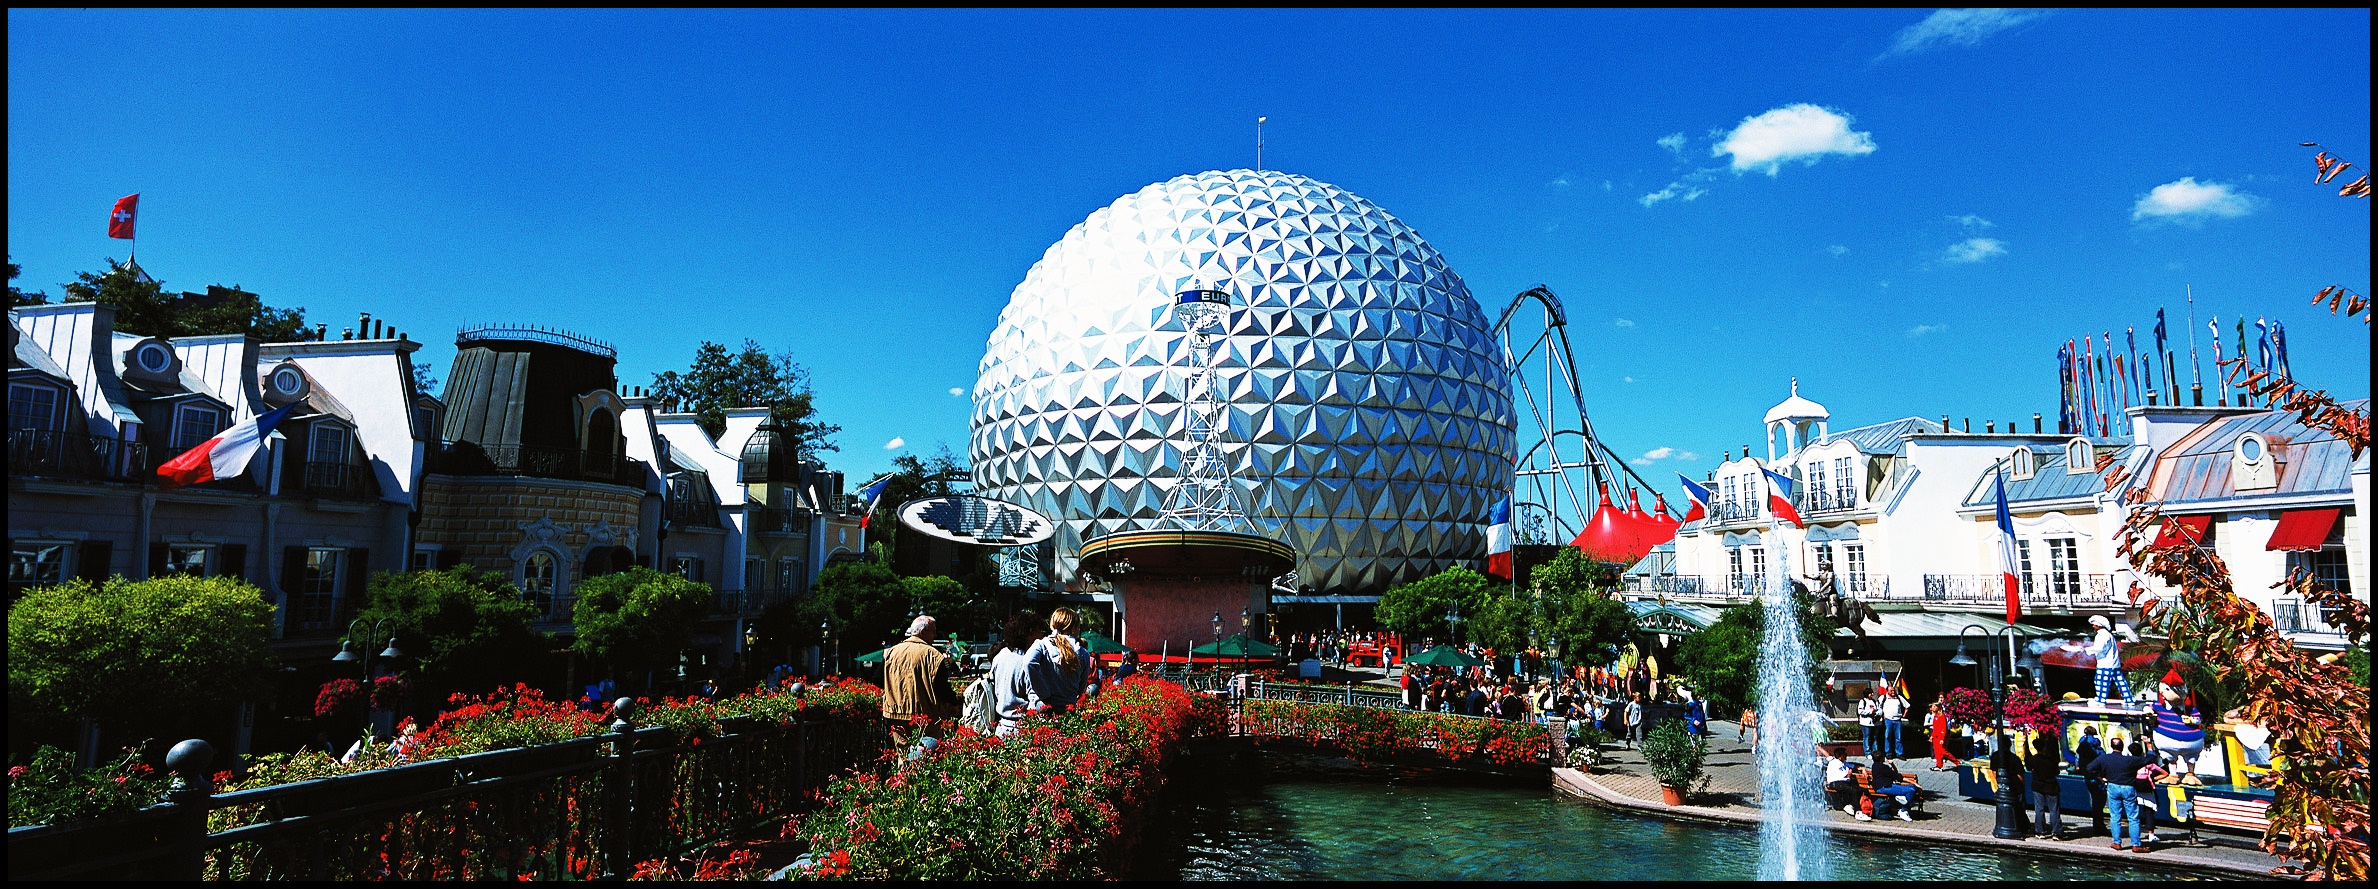 us based amusement parks Tripadvisor - travelers' choice awards find out what the best amusement parks in the united states are as awarded by millions of real travelers.